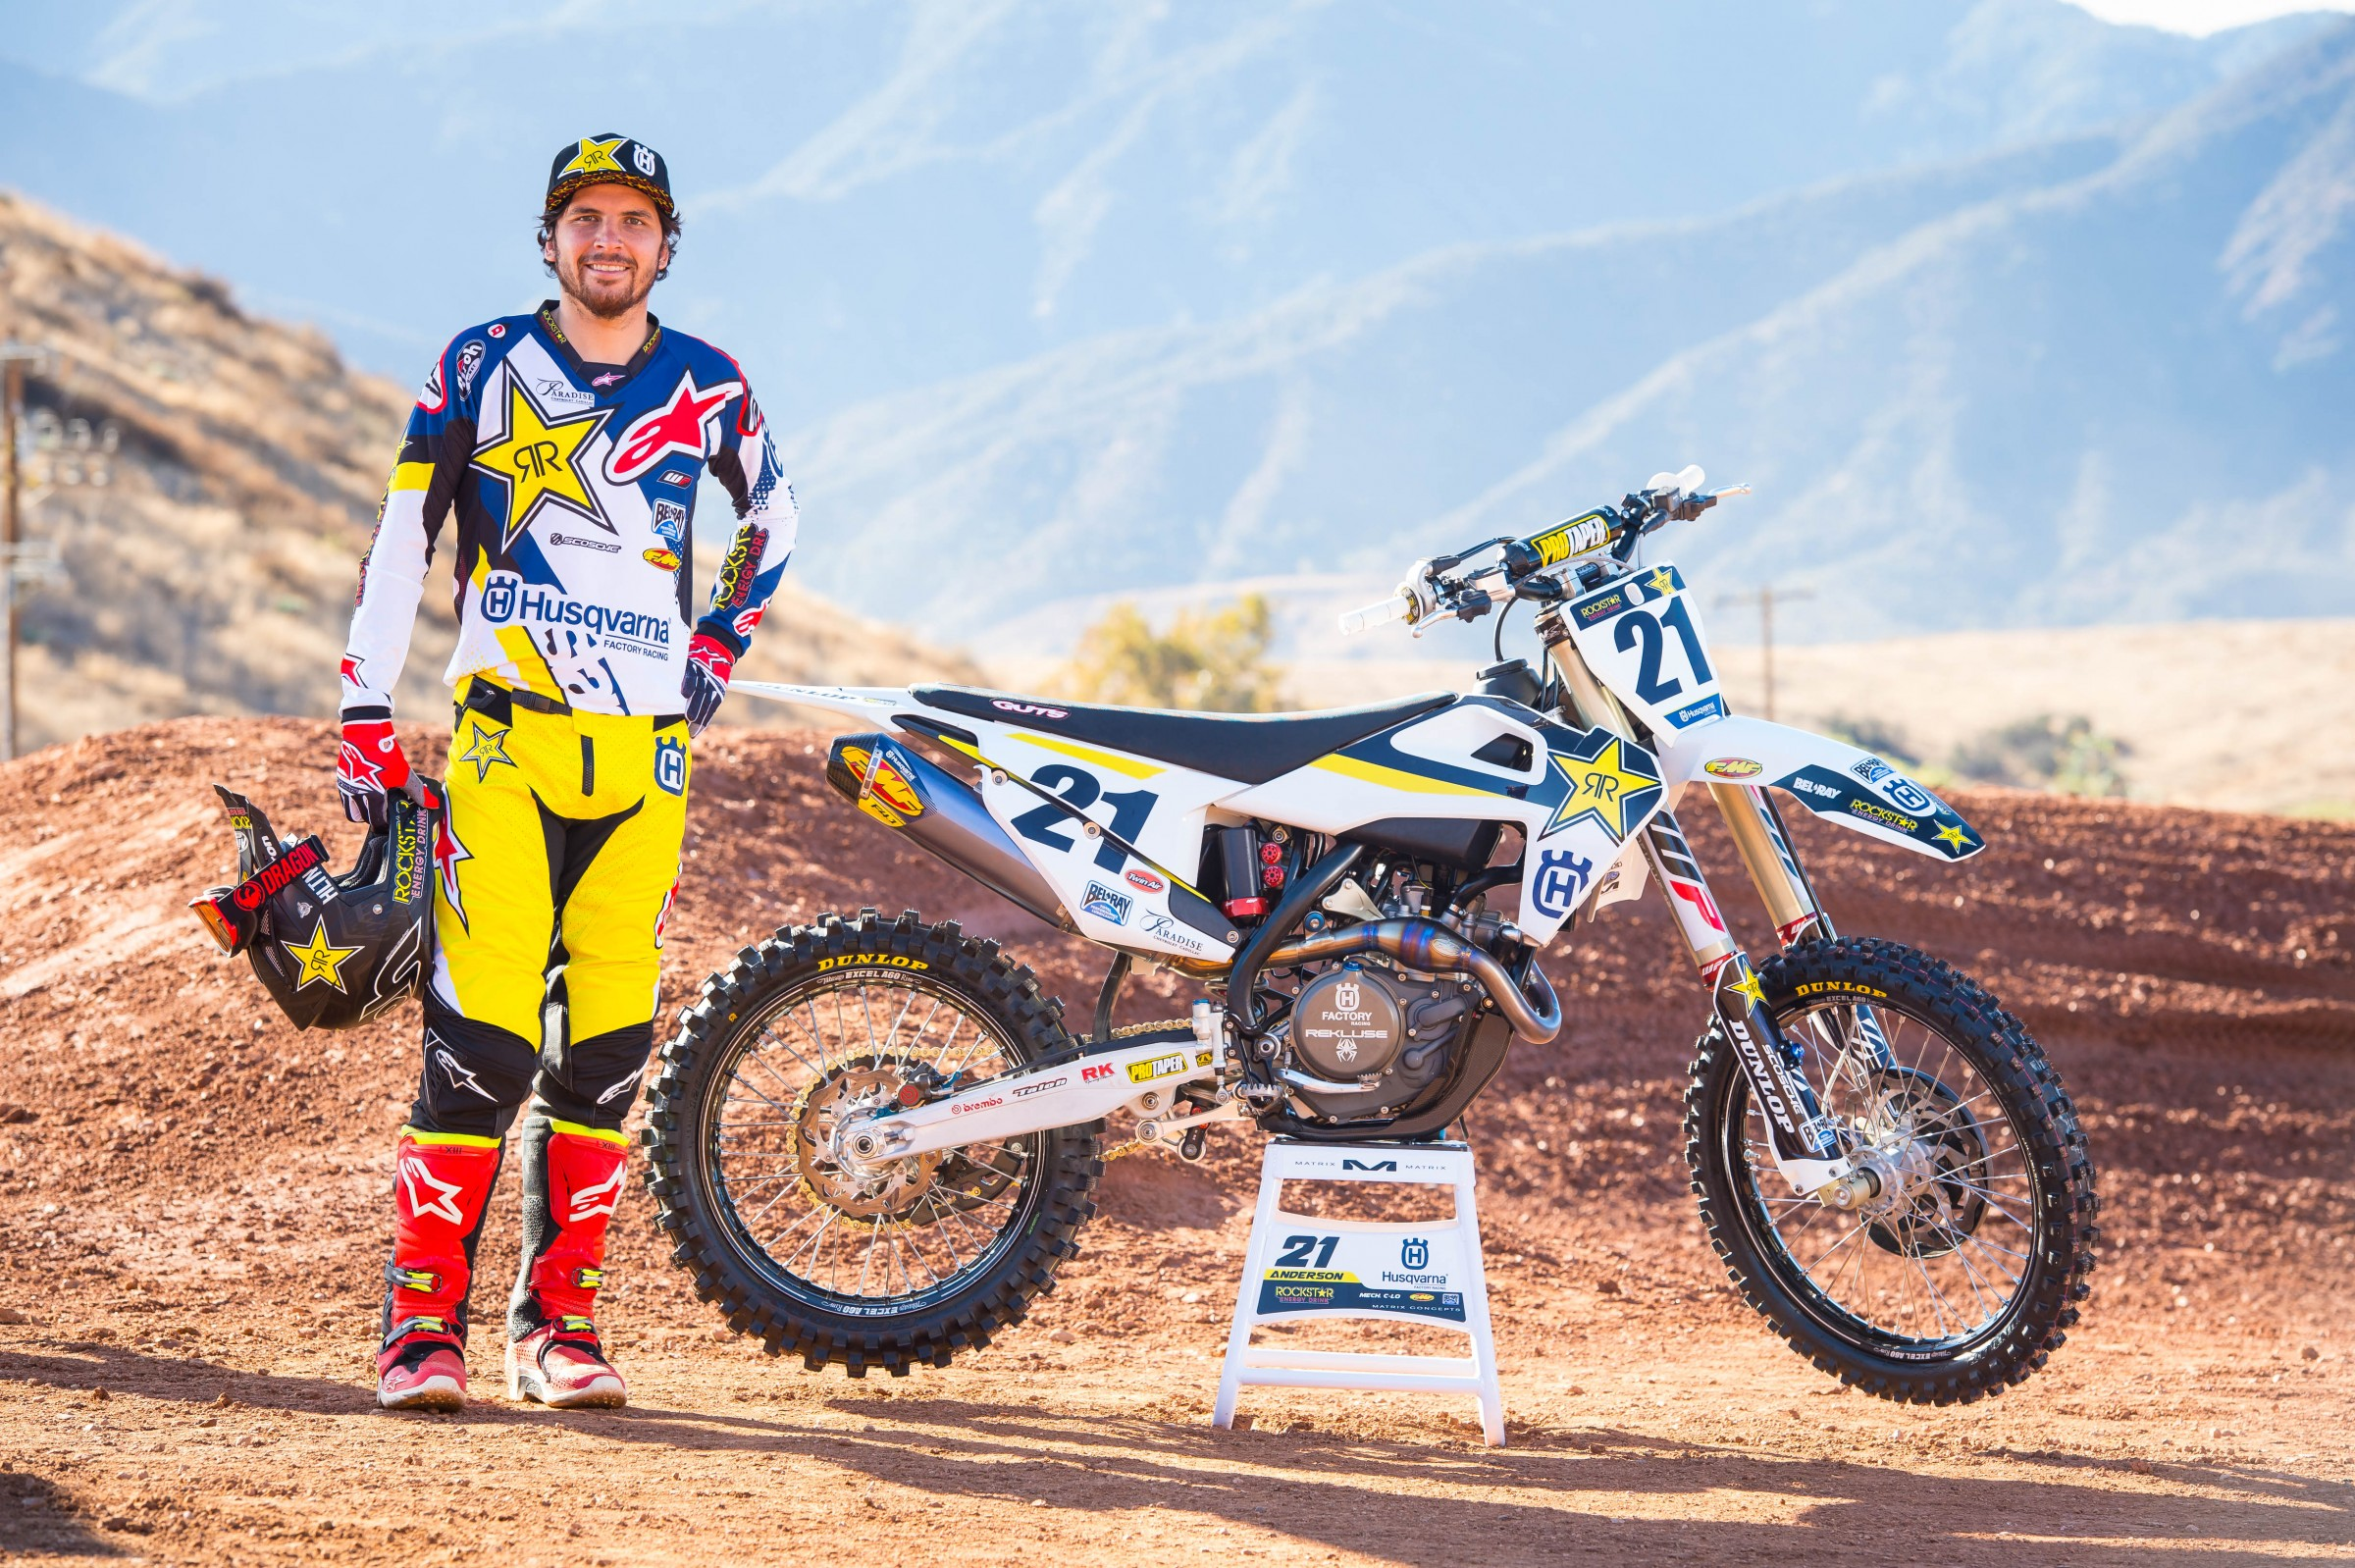 Anderson is coming off his 2018 Monster Energy Supercross Championship title win.